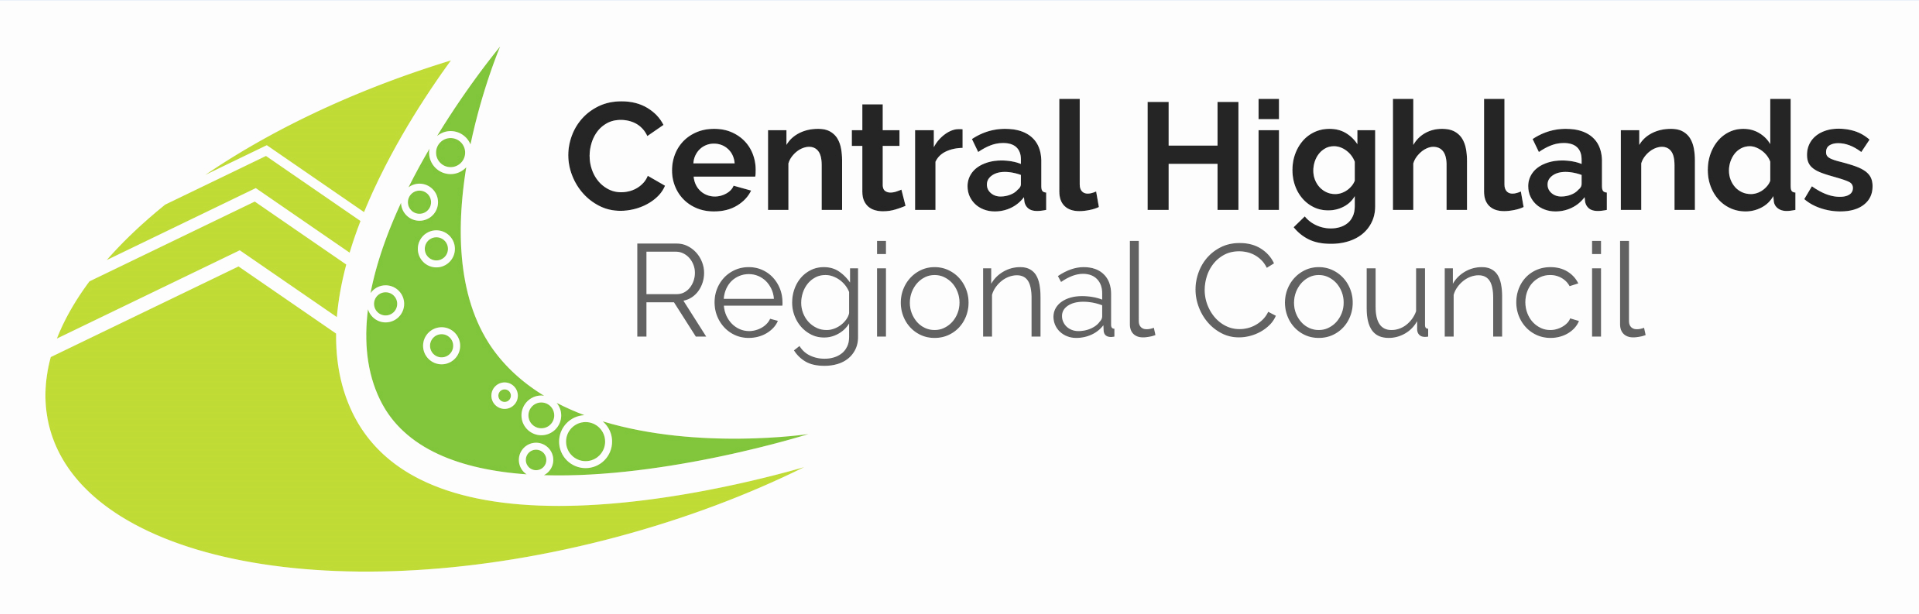 Central Highlands Regional Council Learning and Development System Logo